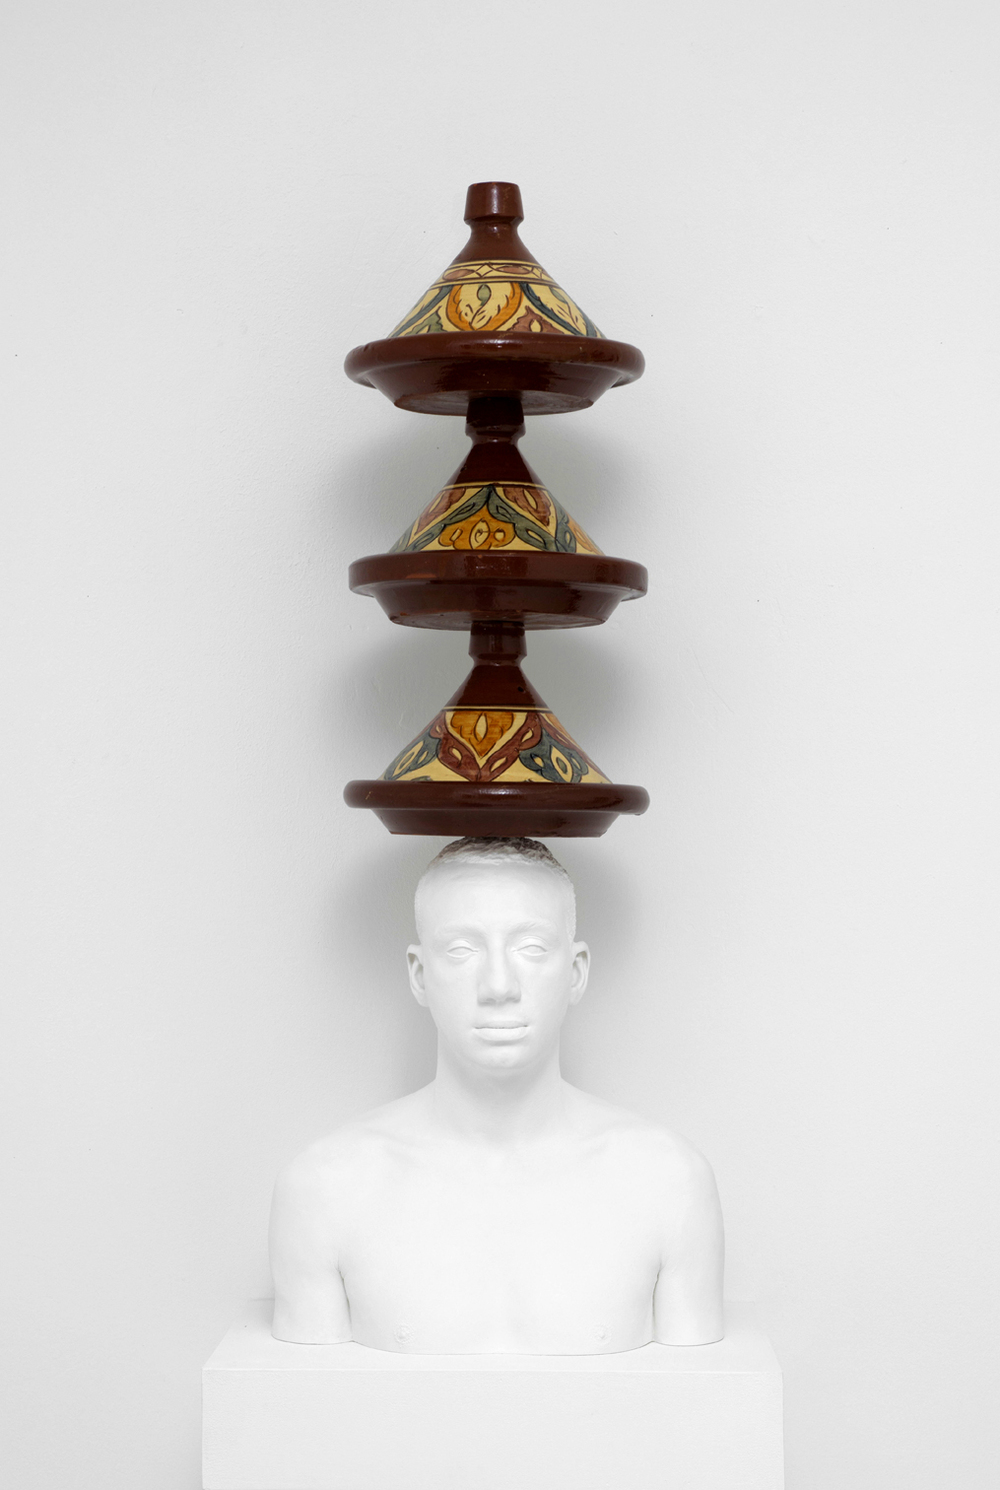 Mehdi-Georges Lahlou, Equilibre aux tajines, 2012 - Courtesy the artist and Rabouan Moussion Gallery Paris